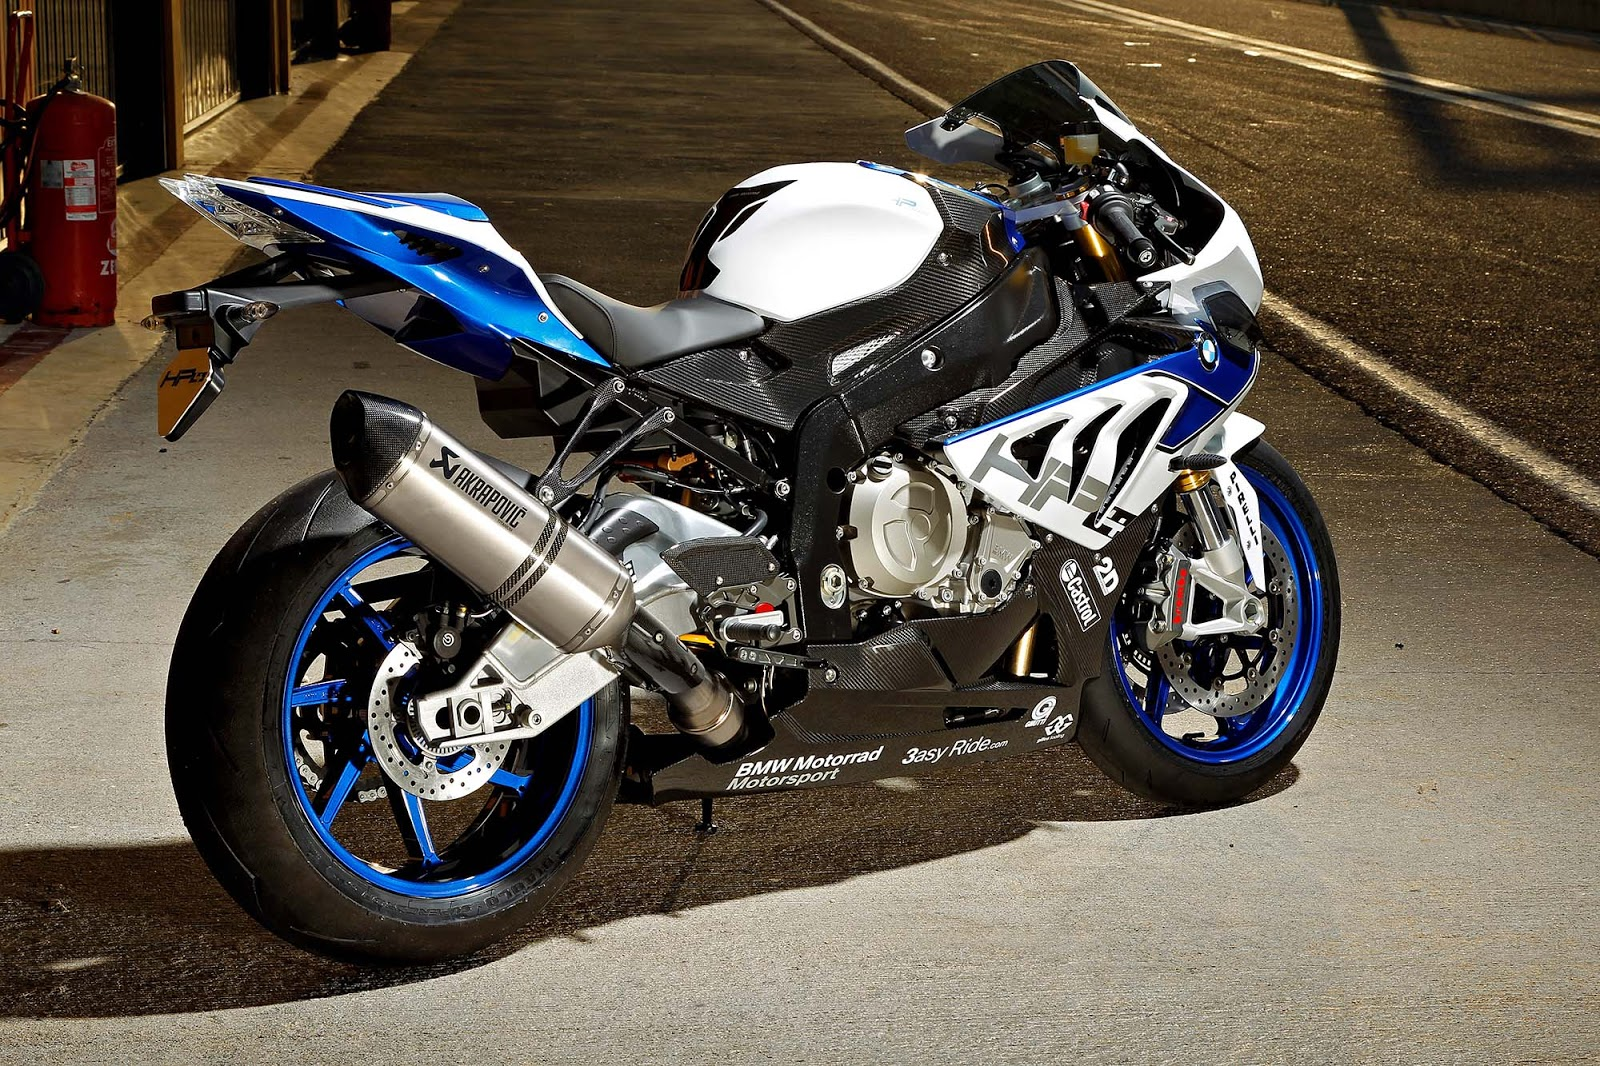 2013 bmw s1000rr hp4 reviews and photos riders. Black Bedroom Furniture Sets. Home Design Ideas